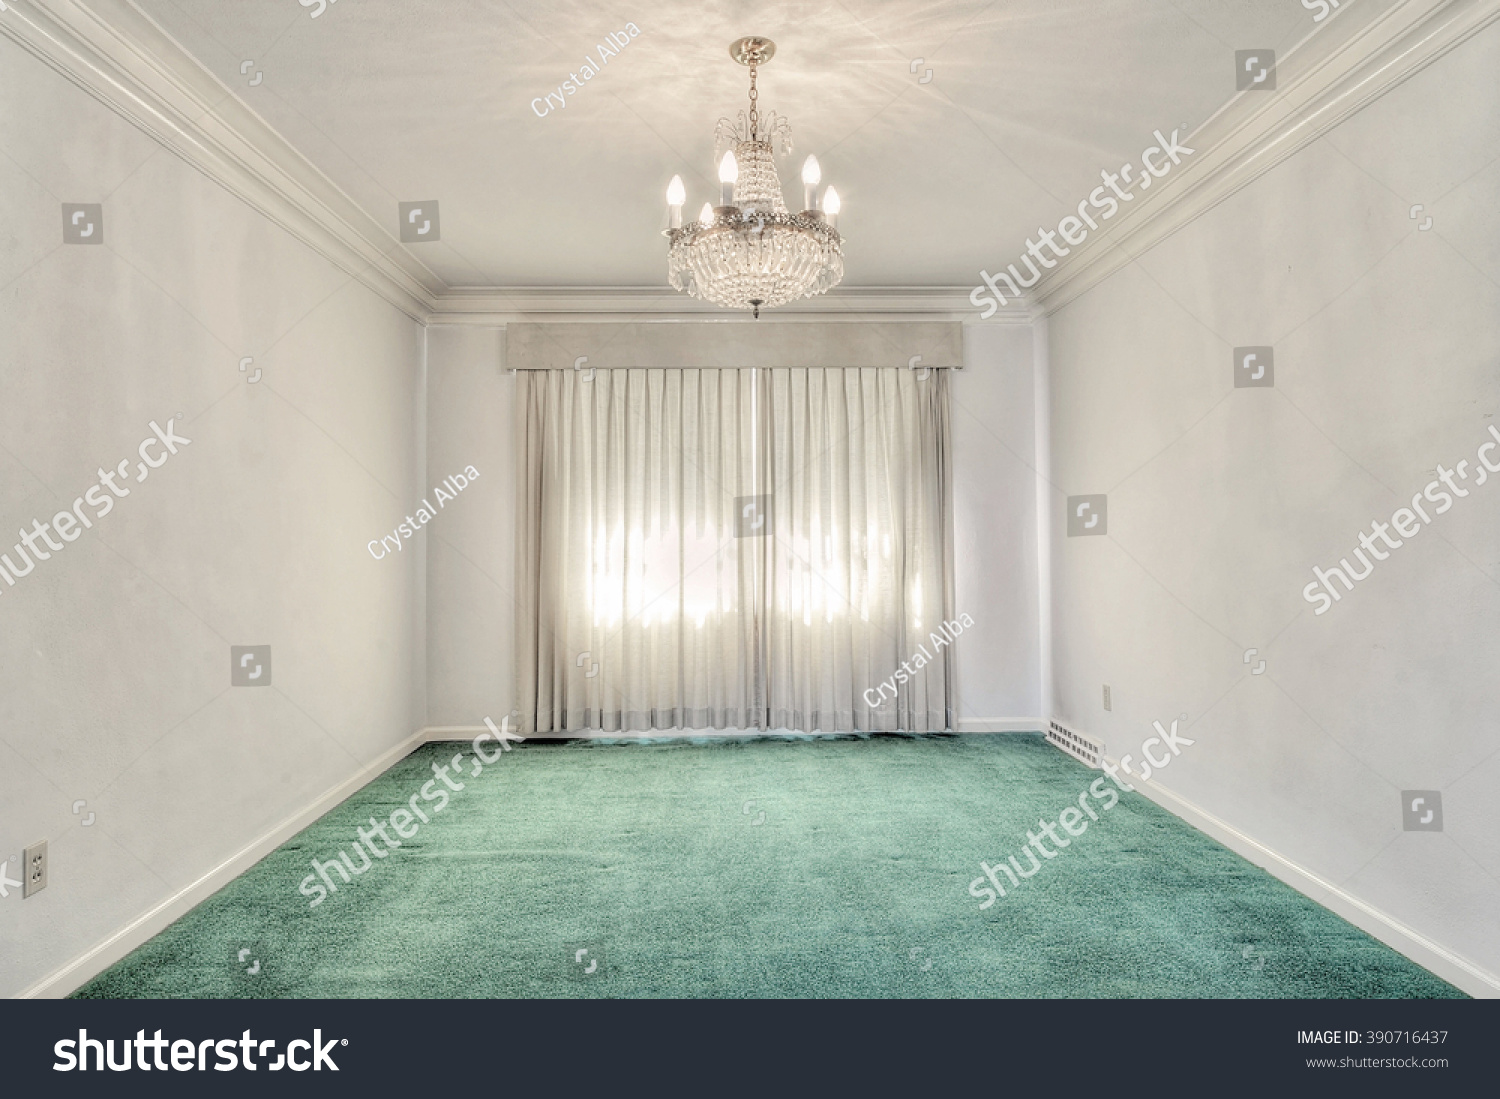 Mid Century Dining Room With Green Carpet